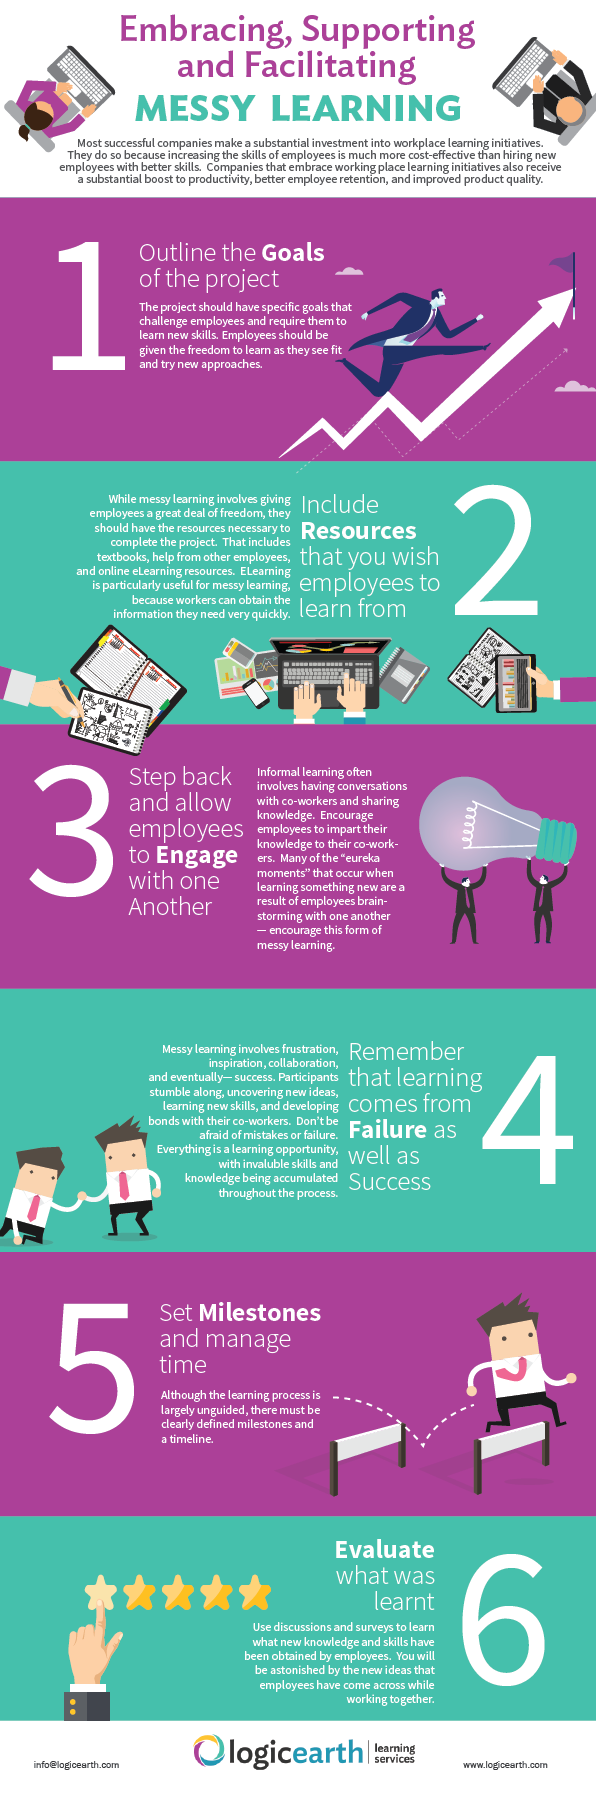 Messy Learning infographic 2 01